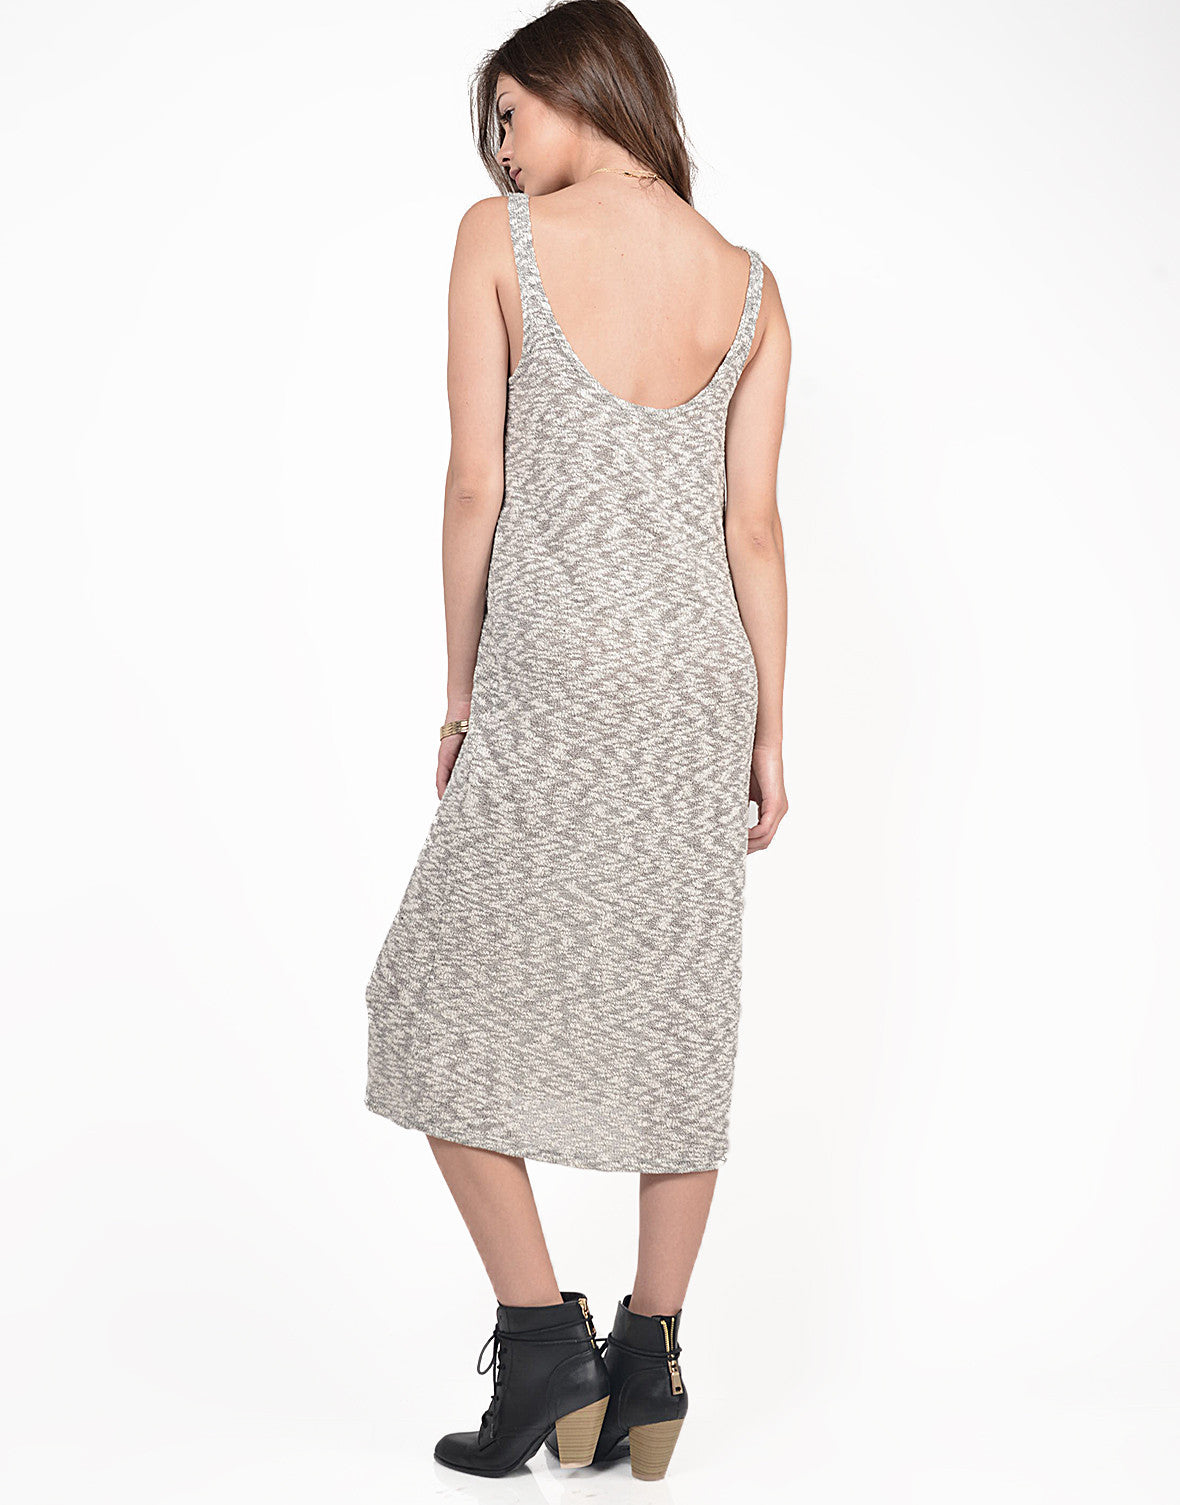 Back View of Heathered Knitted Midi Dress